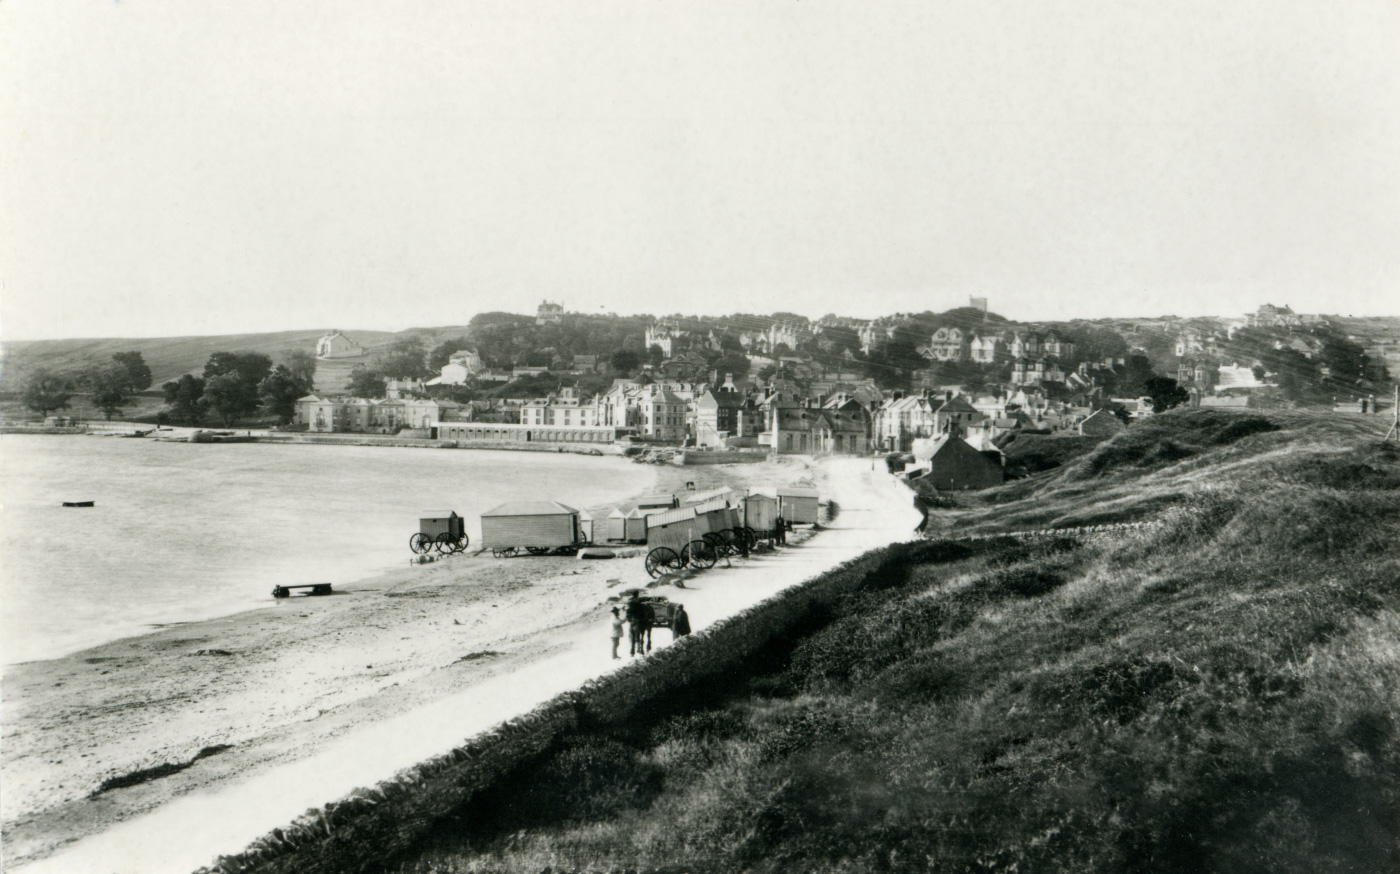 Shore Road with Bathing Huts on the beach